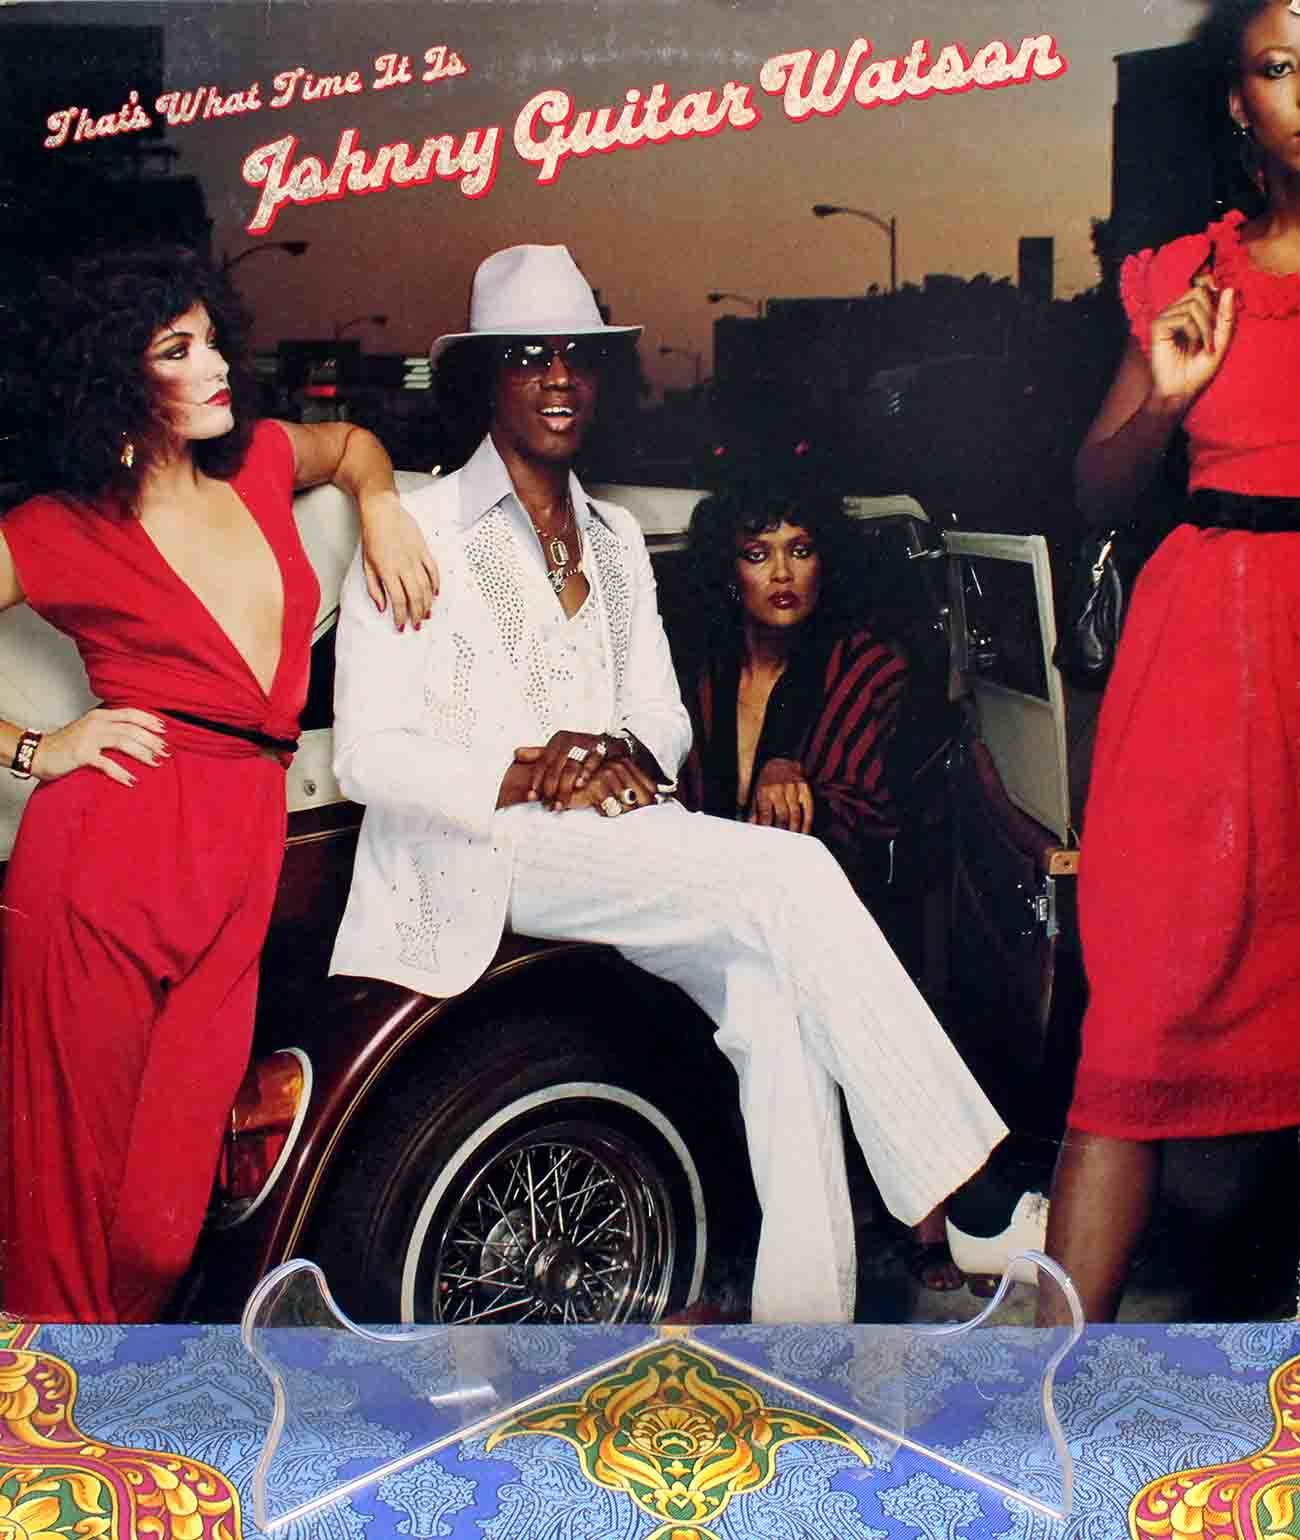 Johnny Guitar Watson ‎ Thats What Time It Is 01